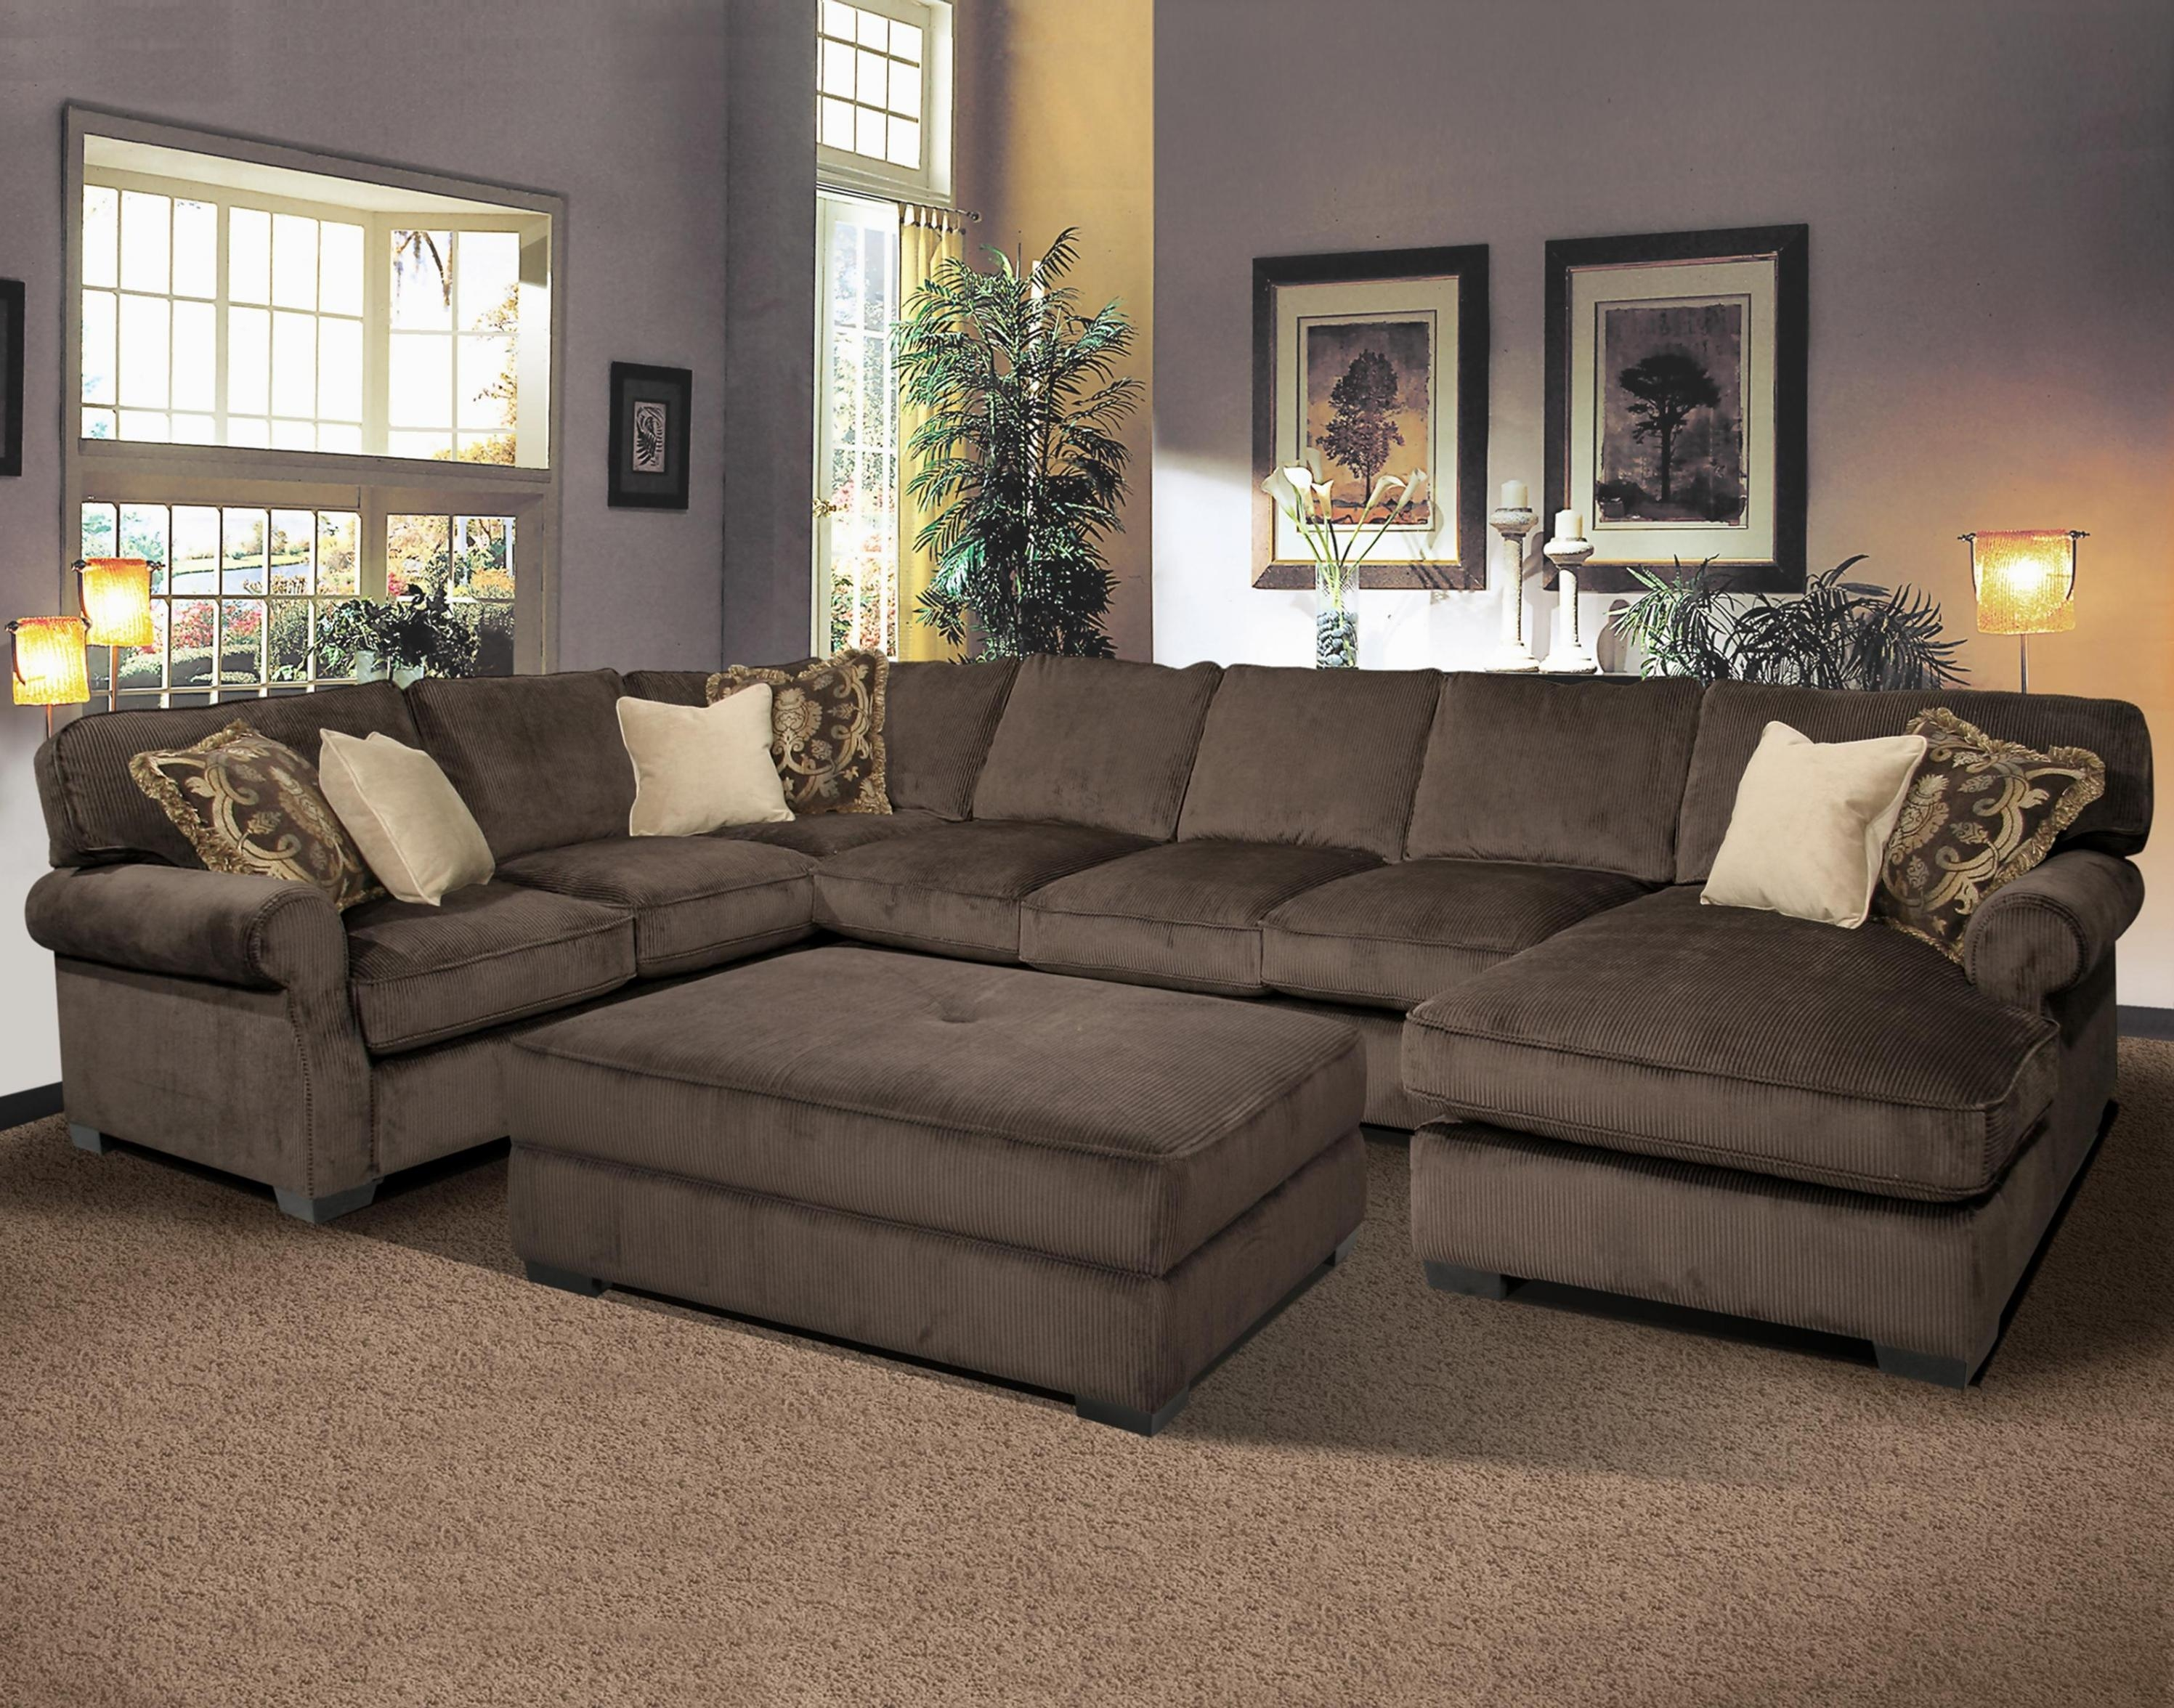 Beautiful Sectional Sofa With Cuddler Chaise | Sofa Ideas With Regard To Sectional With Ottoman And Chaise (Image 2 of 20)